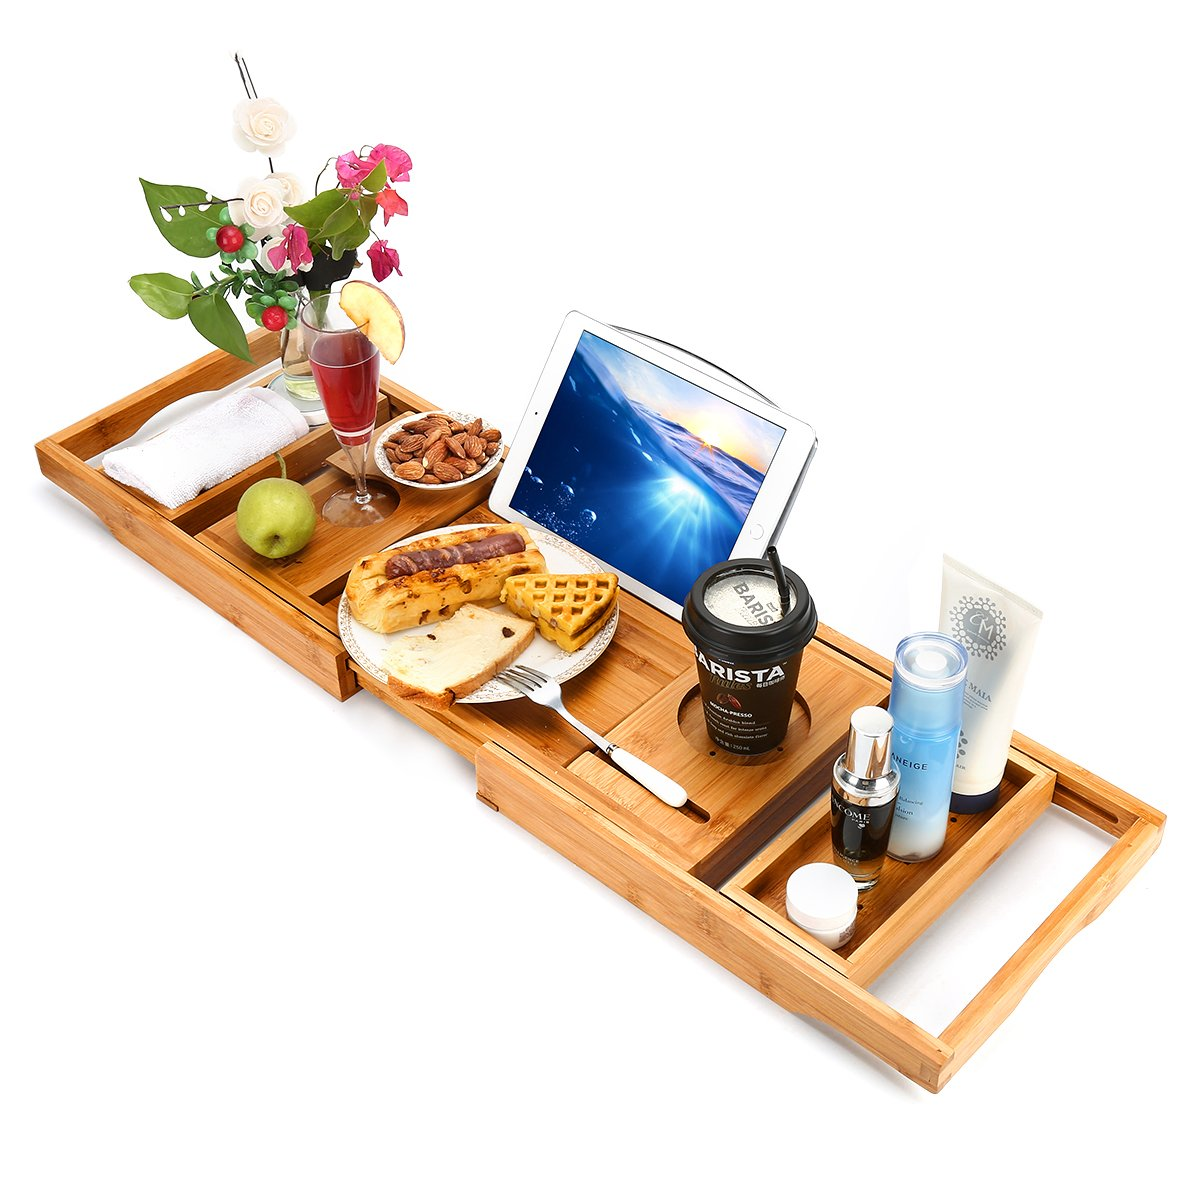 Wooden-Life Bathtub Caddy Tray& Laptop Desk with Foldable Legs, 2 in 1 Wisdom Design - Luxurious Bathtub Caddy with Extending Sides, Tablet Holder, Reading Rack,Cellphone Tray and Wine Glass Holder by Wooden-Life (Image #6)